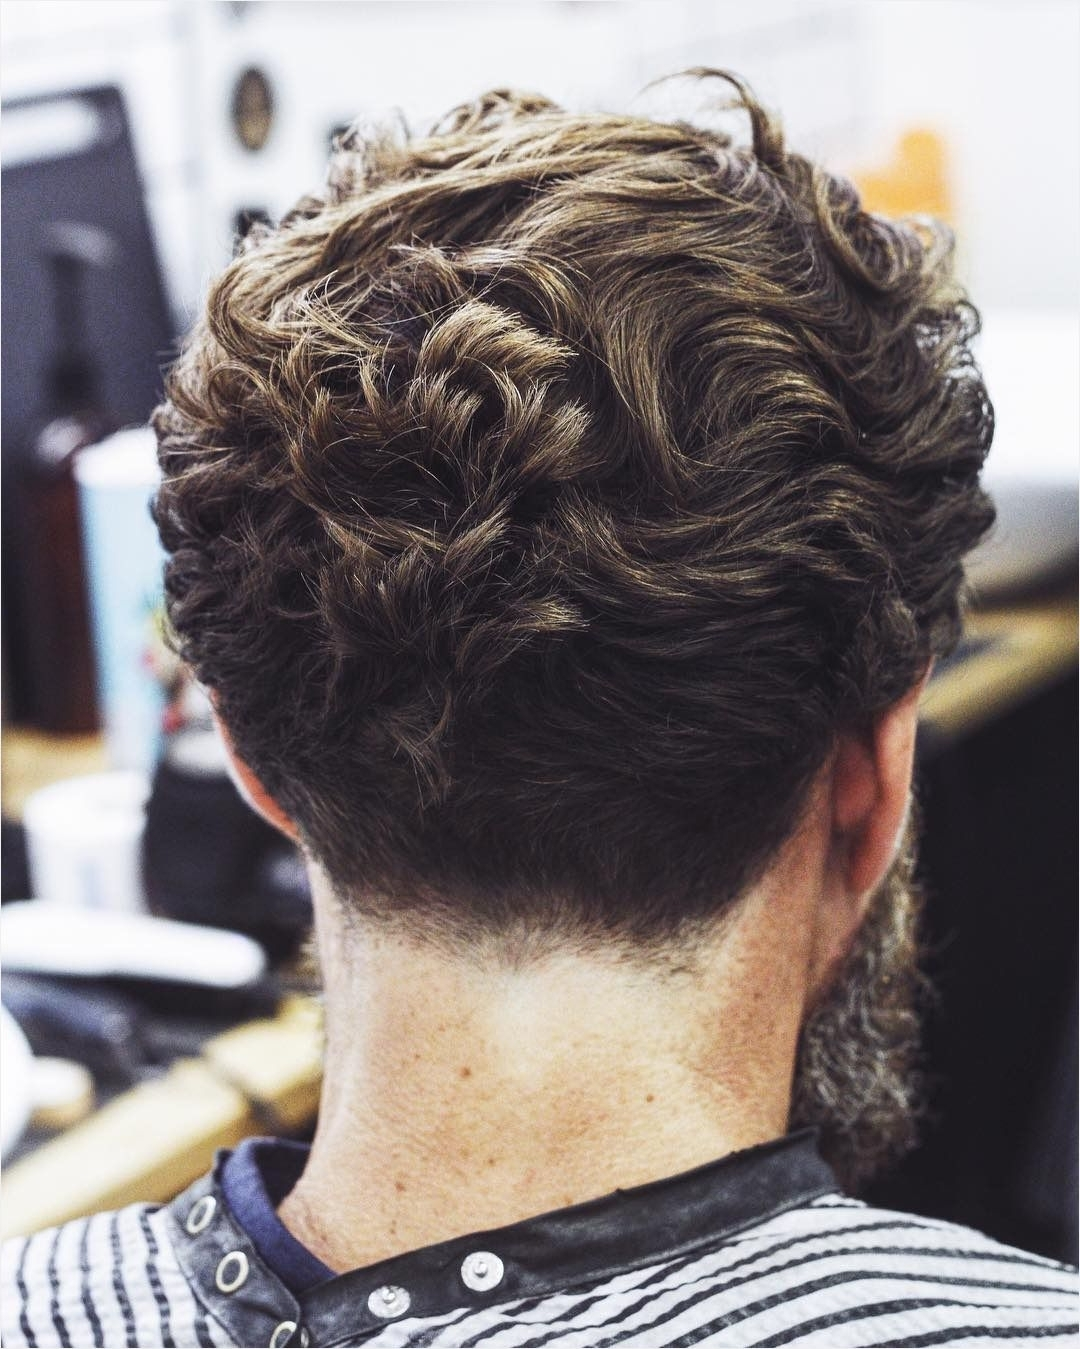 Best Curly Hairstyles For Men Lovely Short Curly Haircuts 30+ Awesome Mens Medium Length Curly Hairstyles 2017